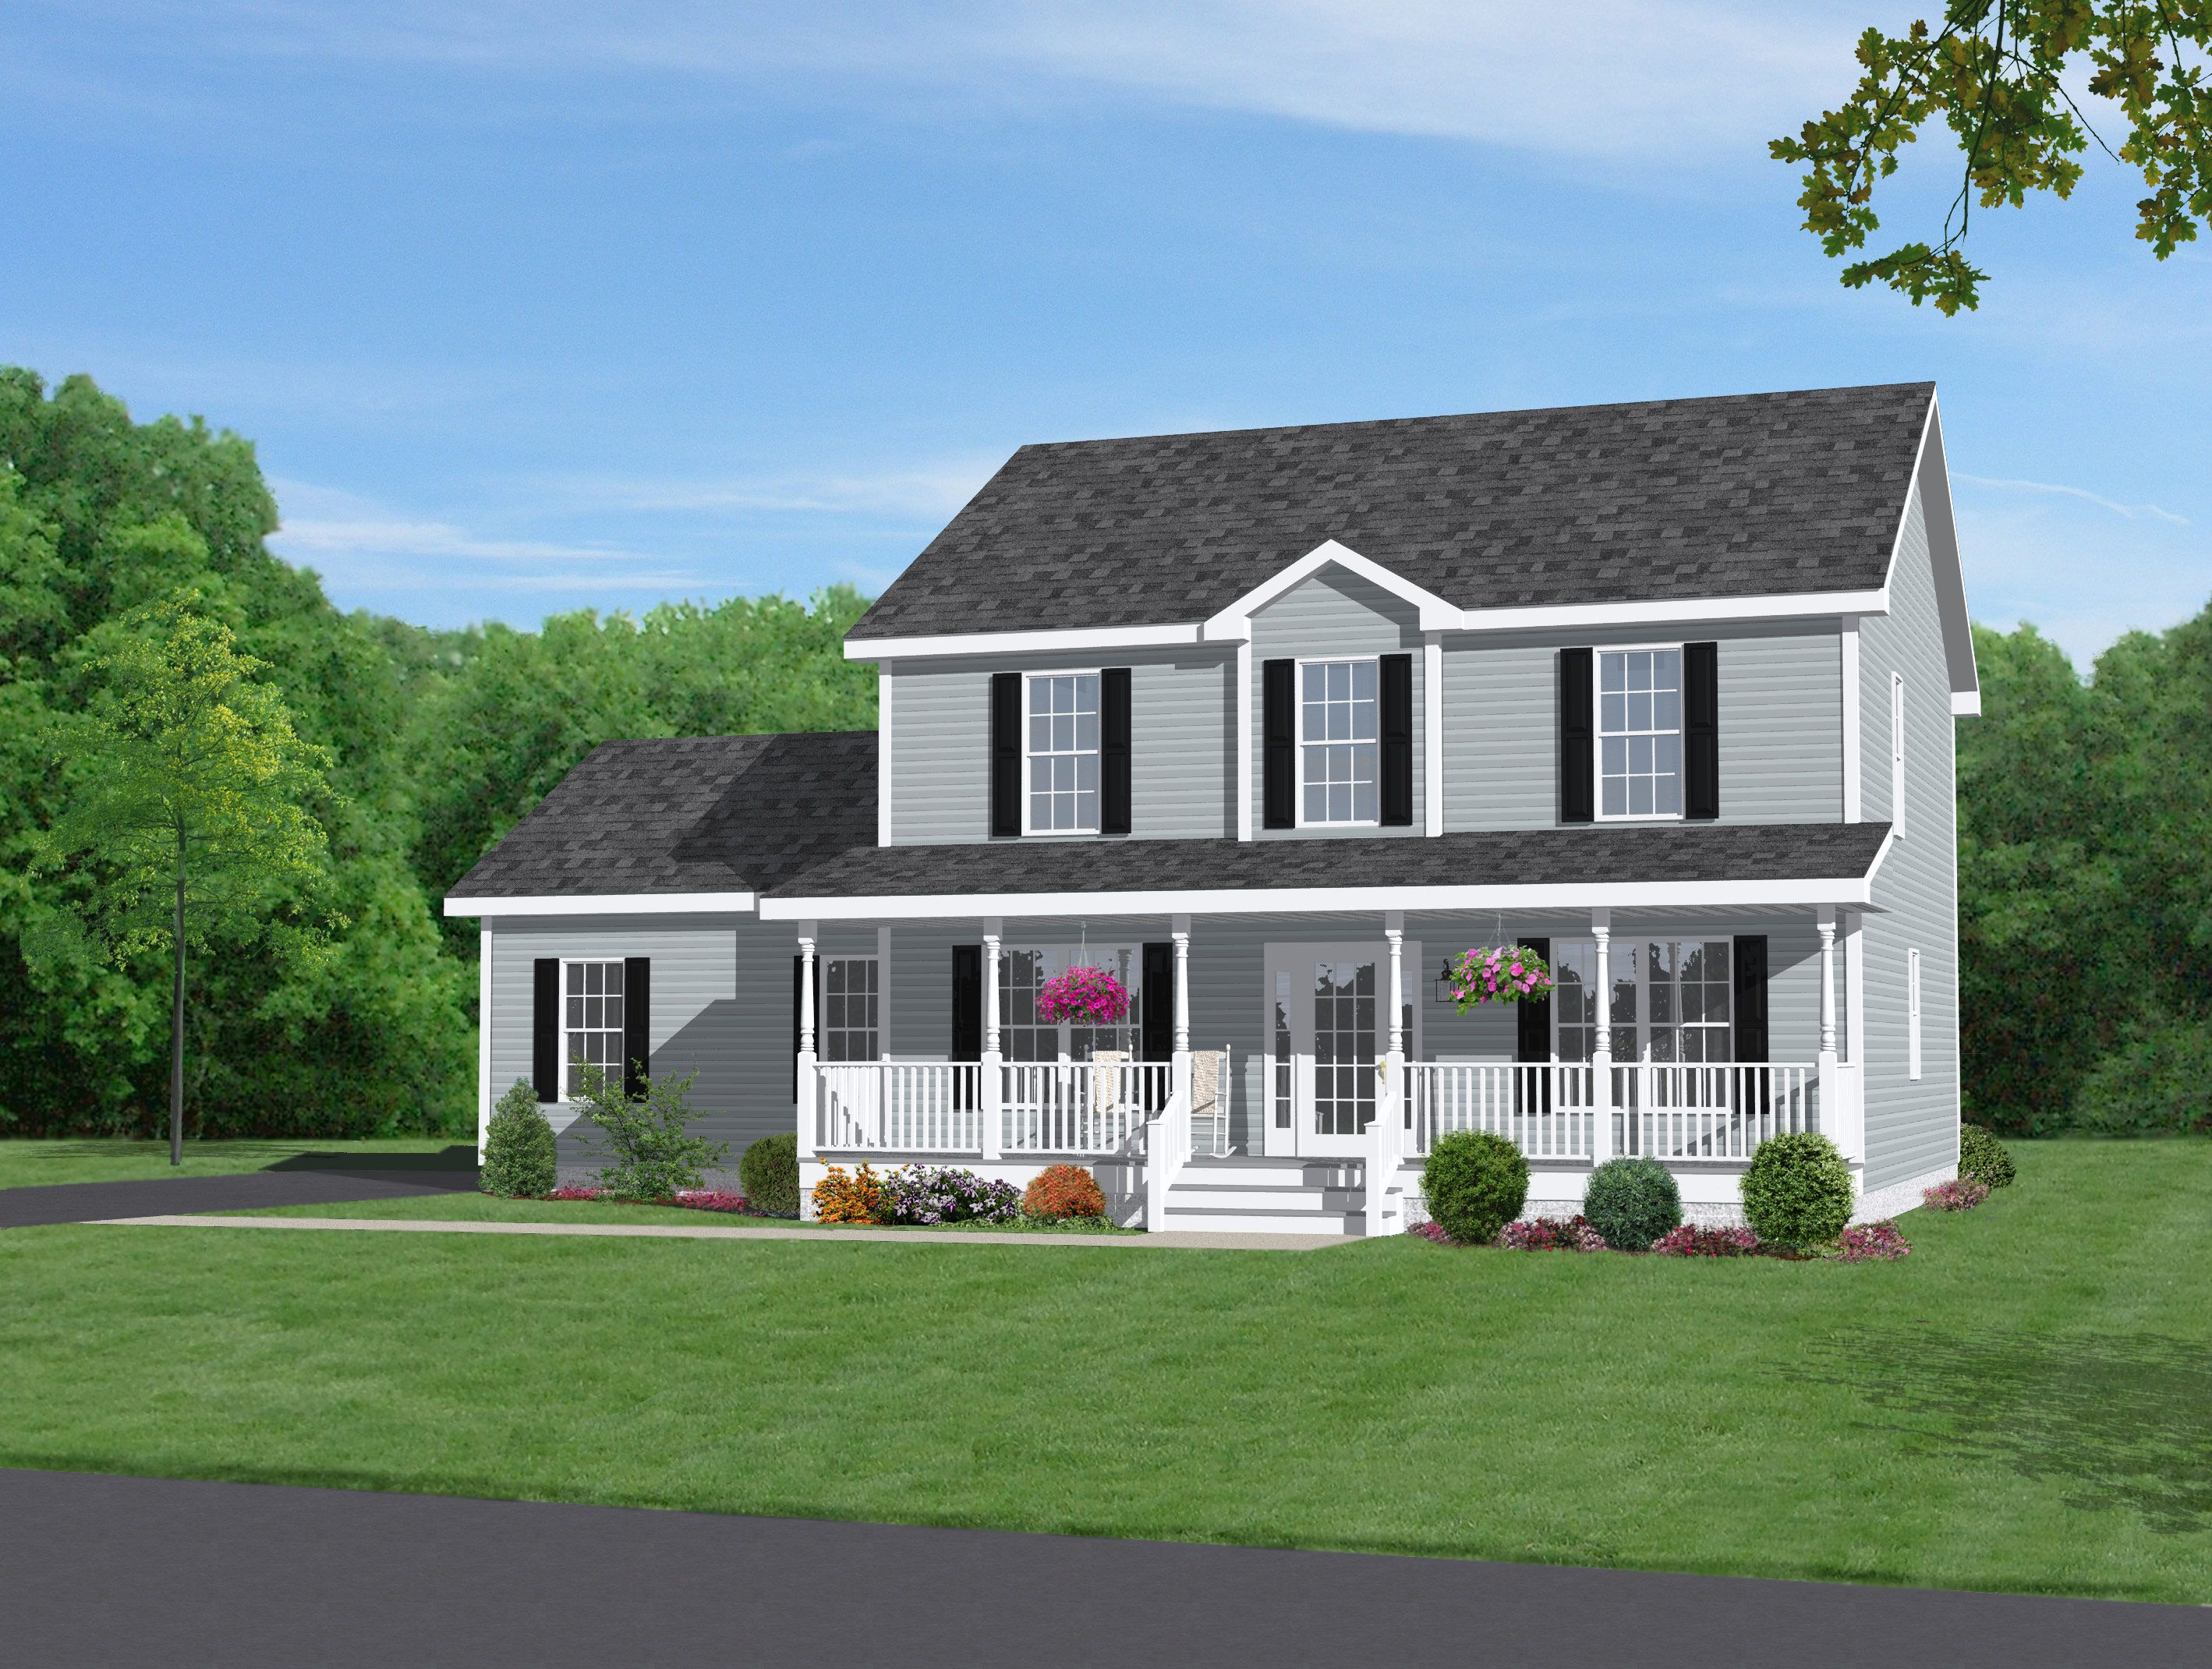 Two story home with beautiful front porch dream home for 2 story farmhouse plans